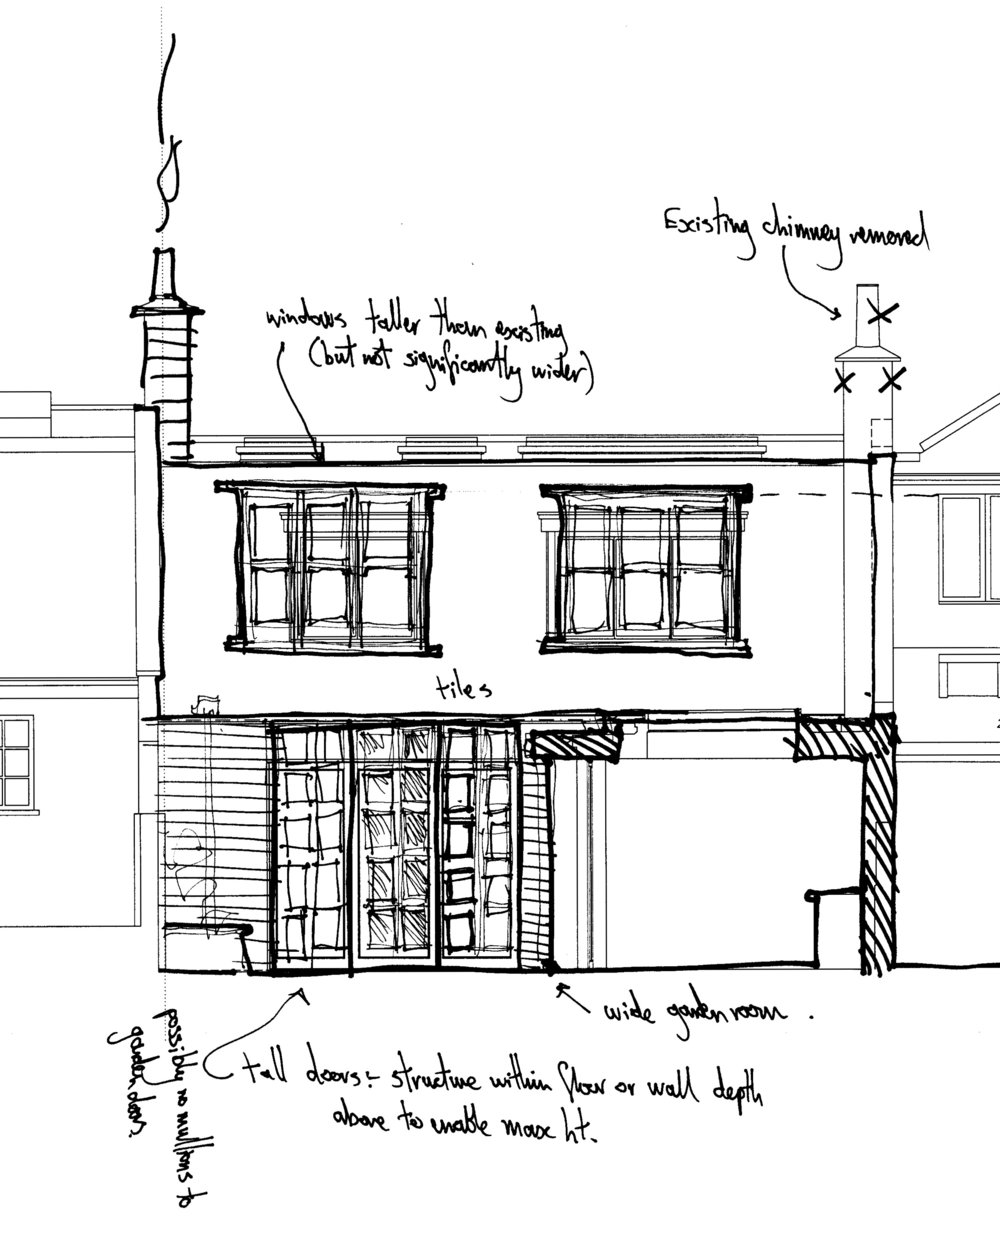 FINEarchitecture_CampdenStreet_Sketch4.jpg